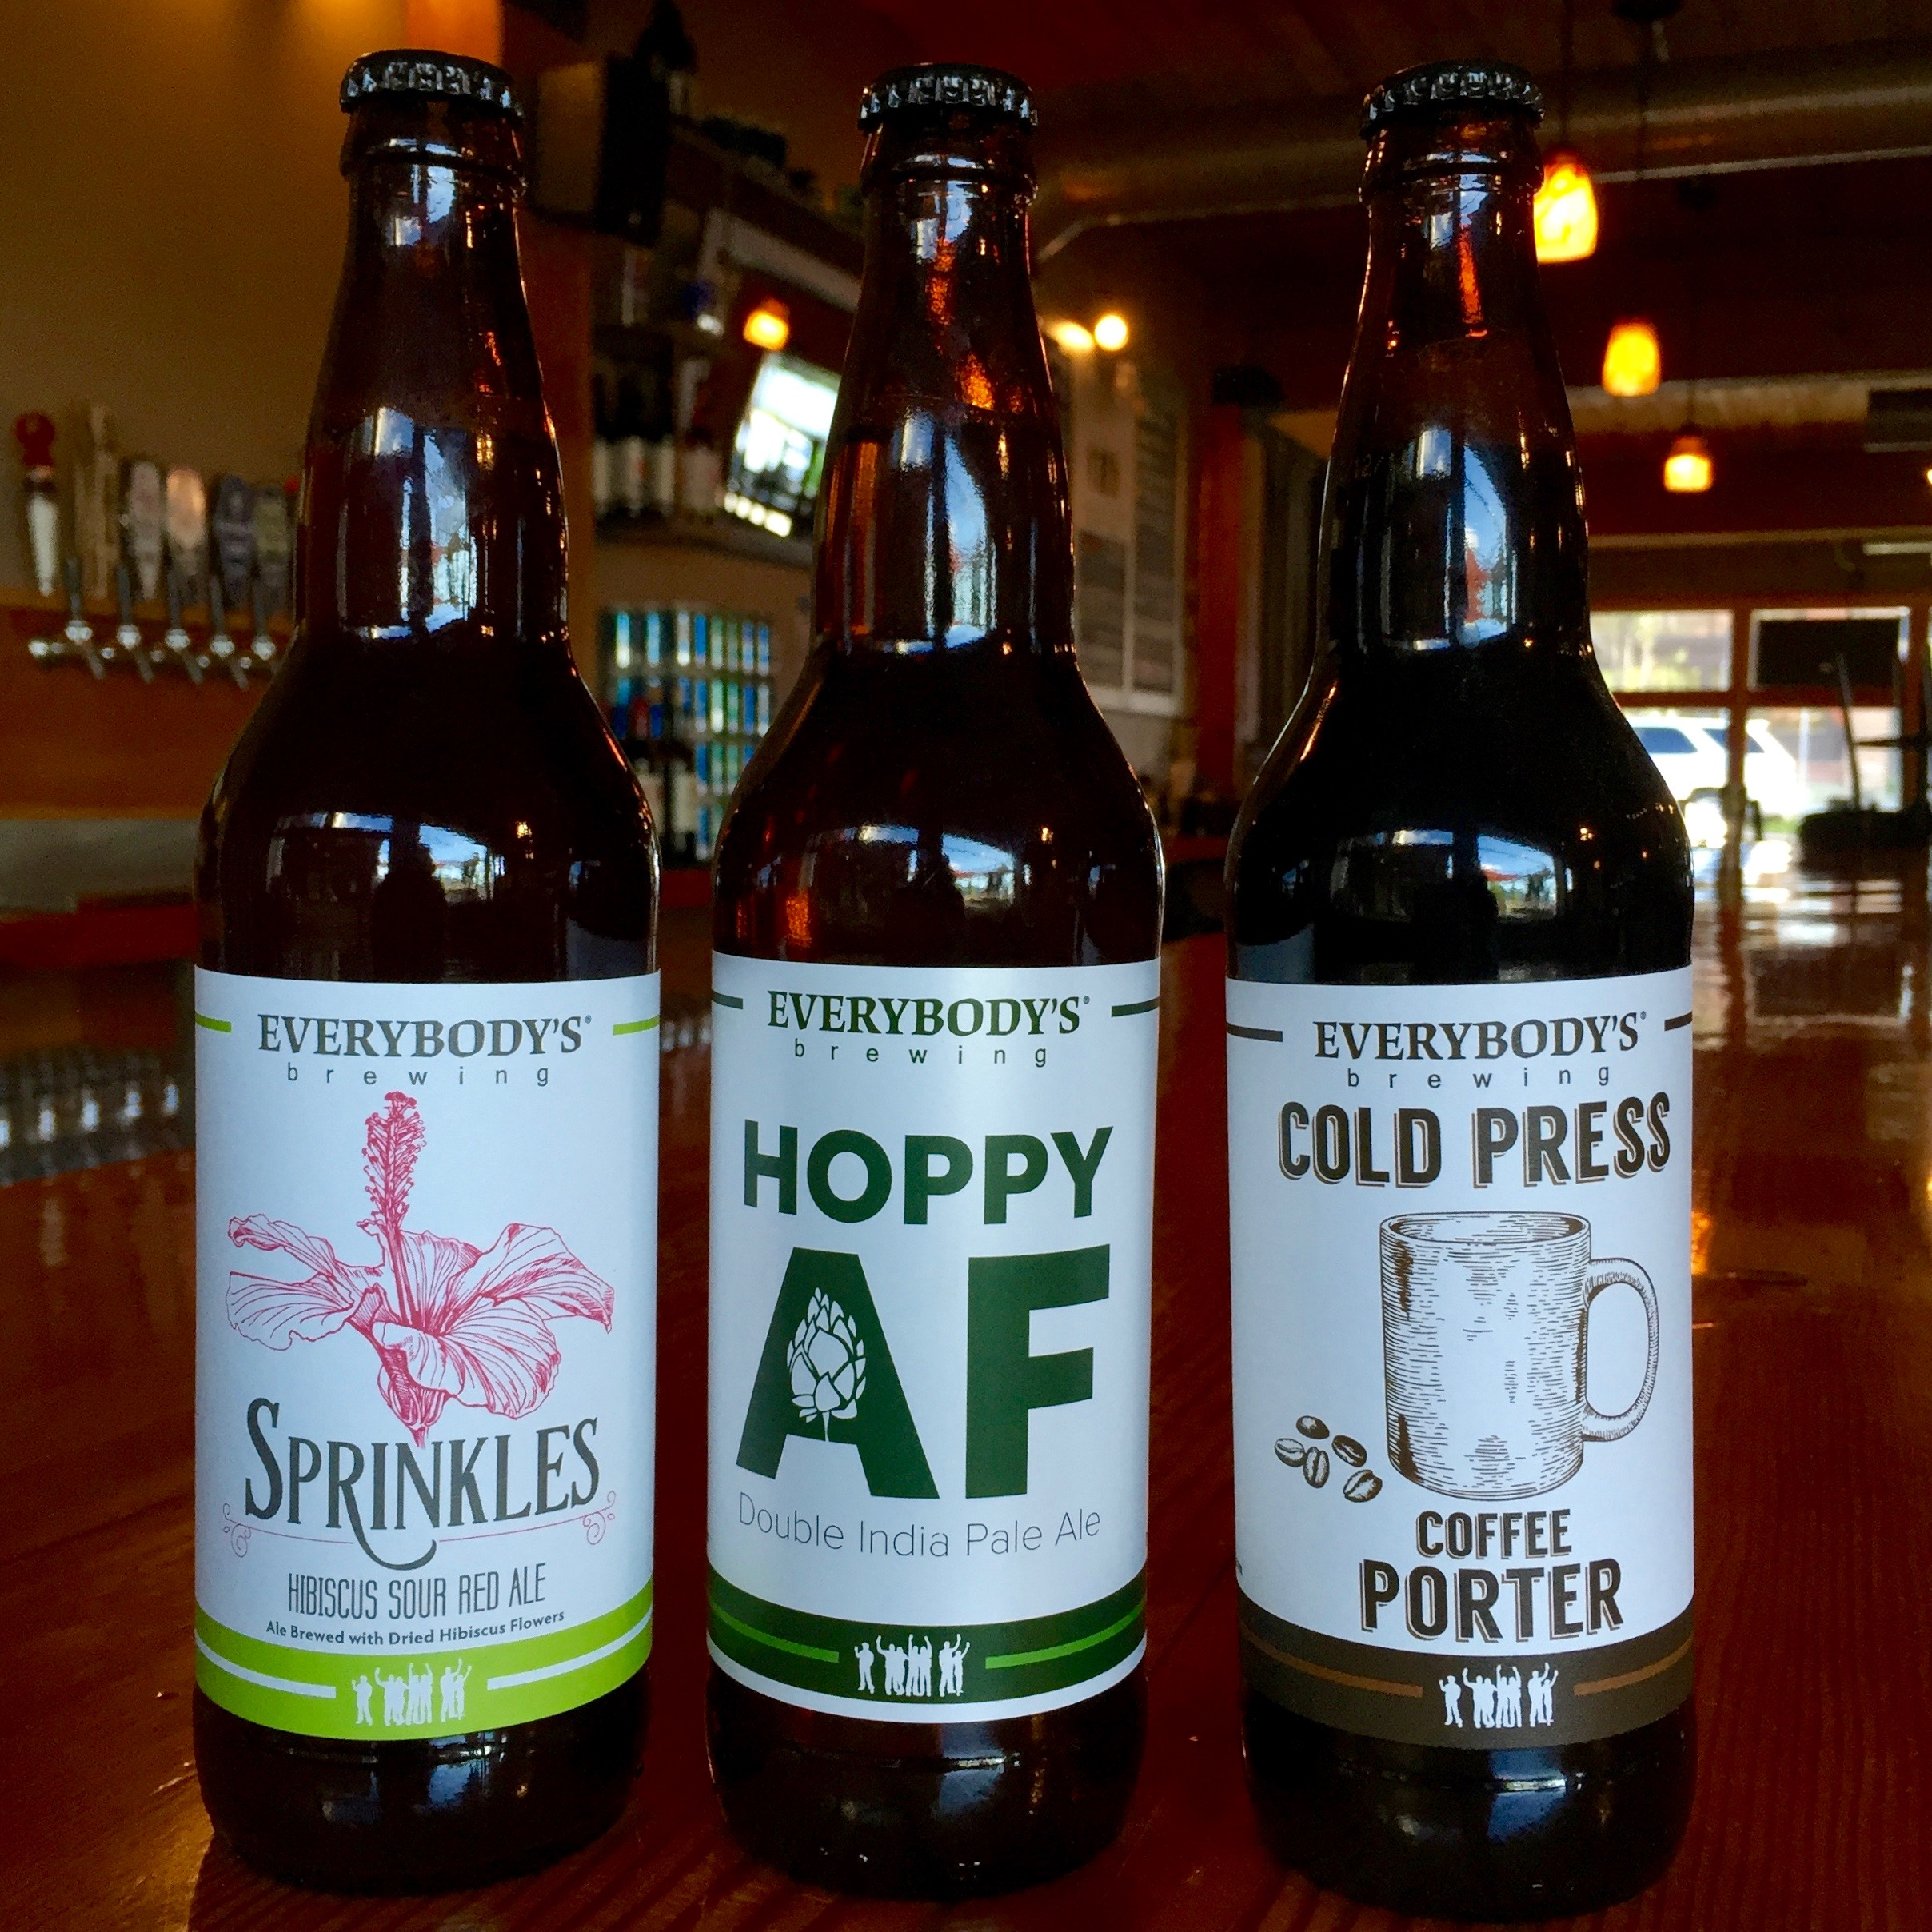 Everybody's Brewing bottles of its Sprinkles Hibiscus Sour Red Ale, Hoppy AF Double India Pale Ale, and Cold Press Coffee Porter. (image courtesy of Everybody's Brewing)